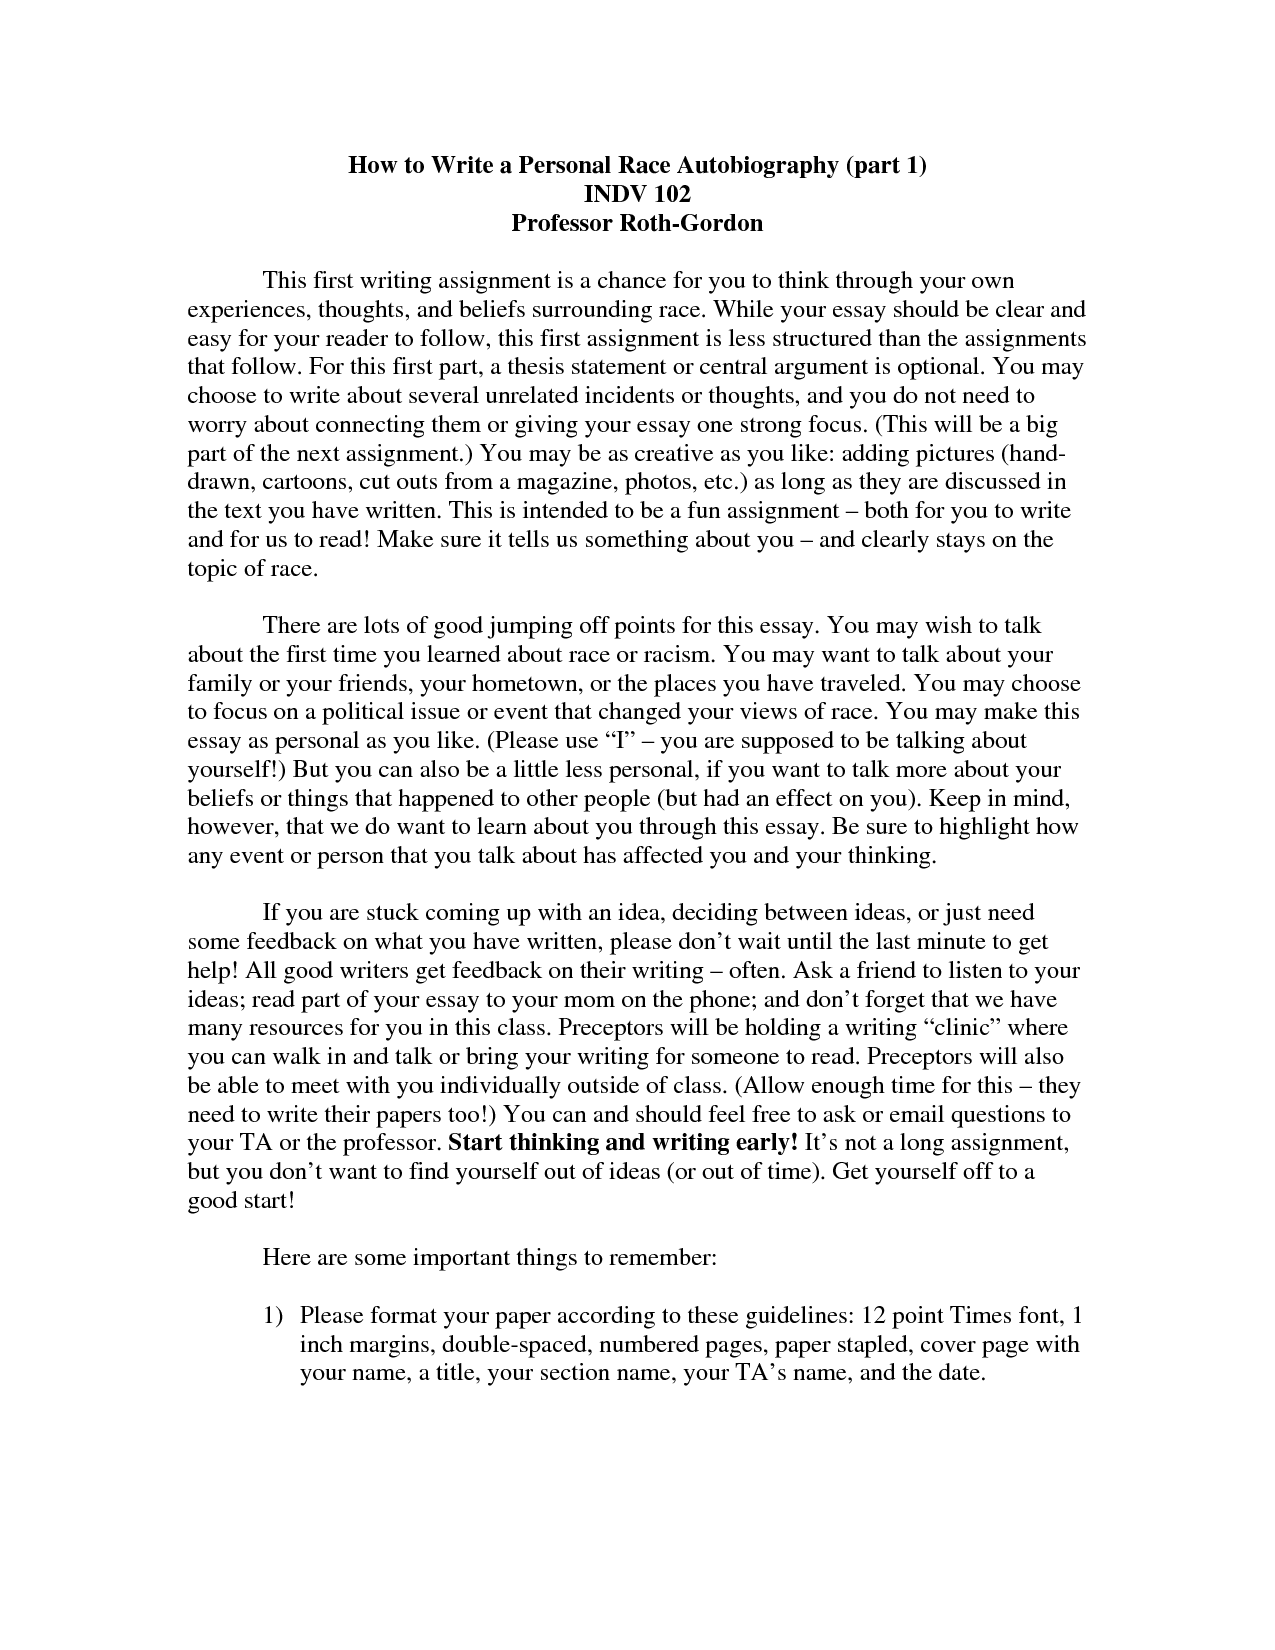 016 How To Write An Autobiographical Essay Autobiography About Yourself For Scholarship College Start Biographicals On Make Narrative Myself Incredible Novel Essays Alexander Chee Graduate School Full